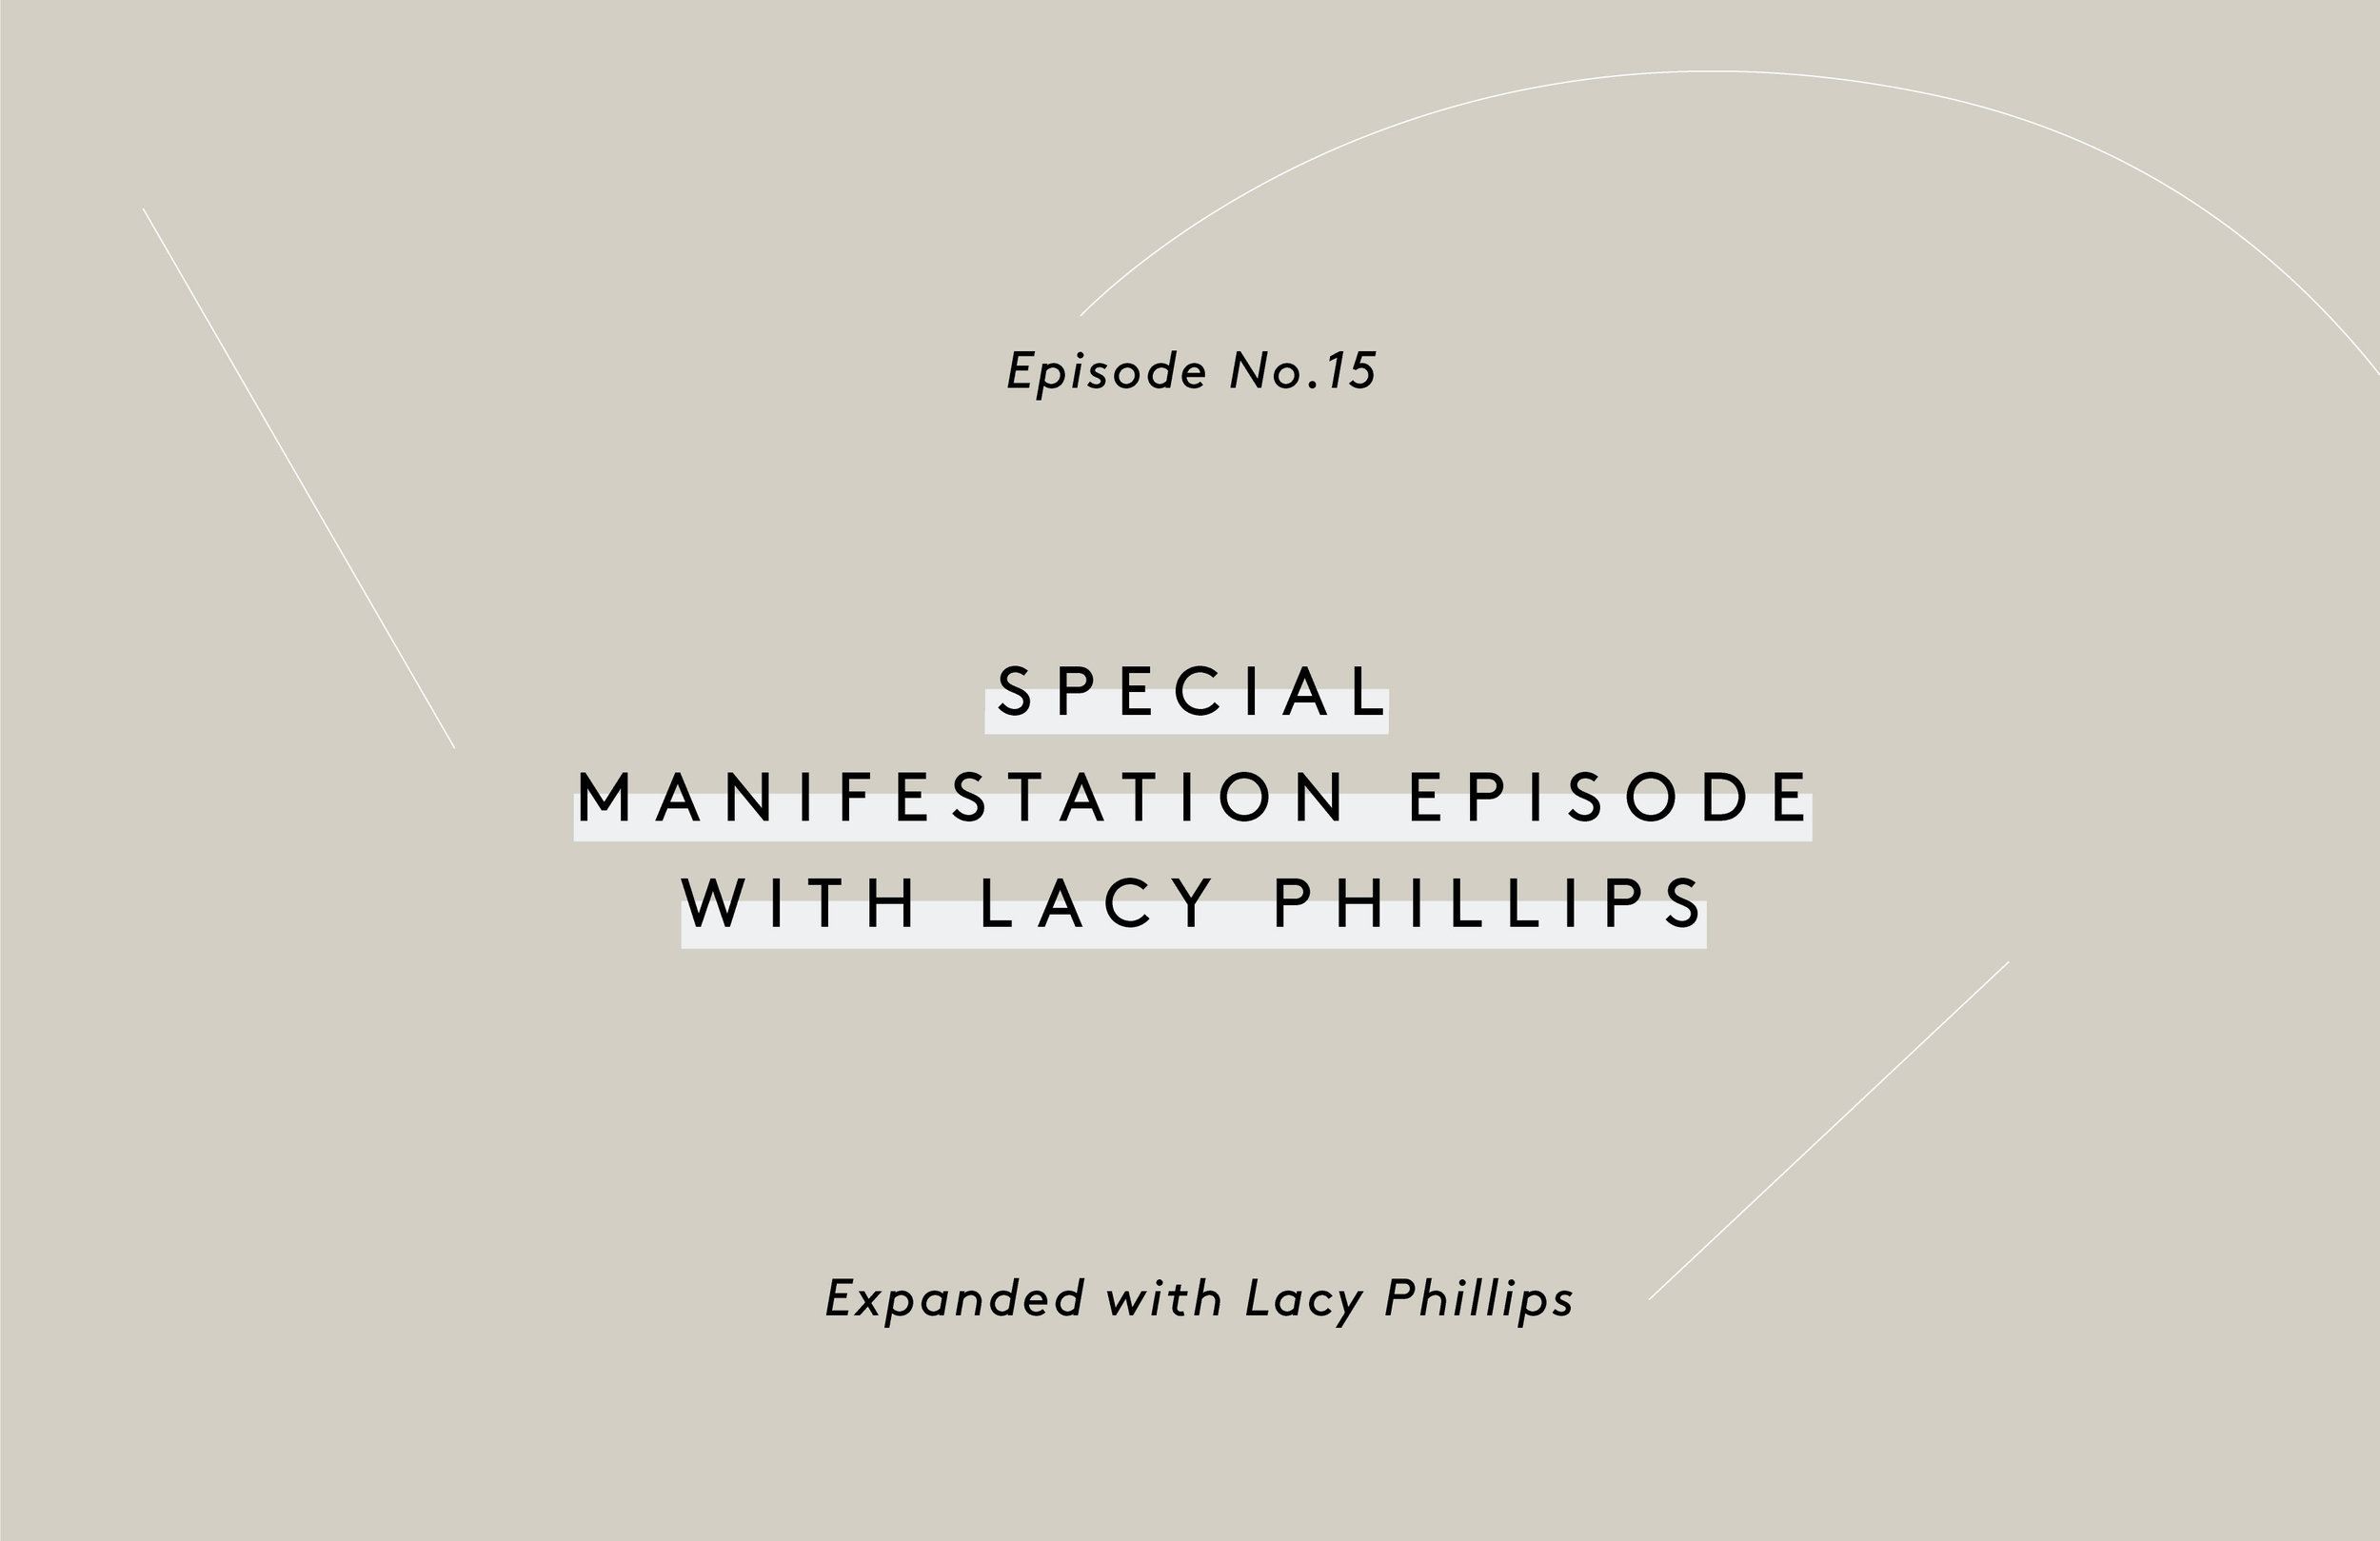 Special Manifestation EP with Lacy Phillips